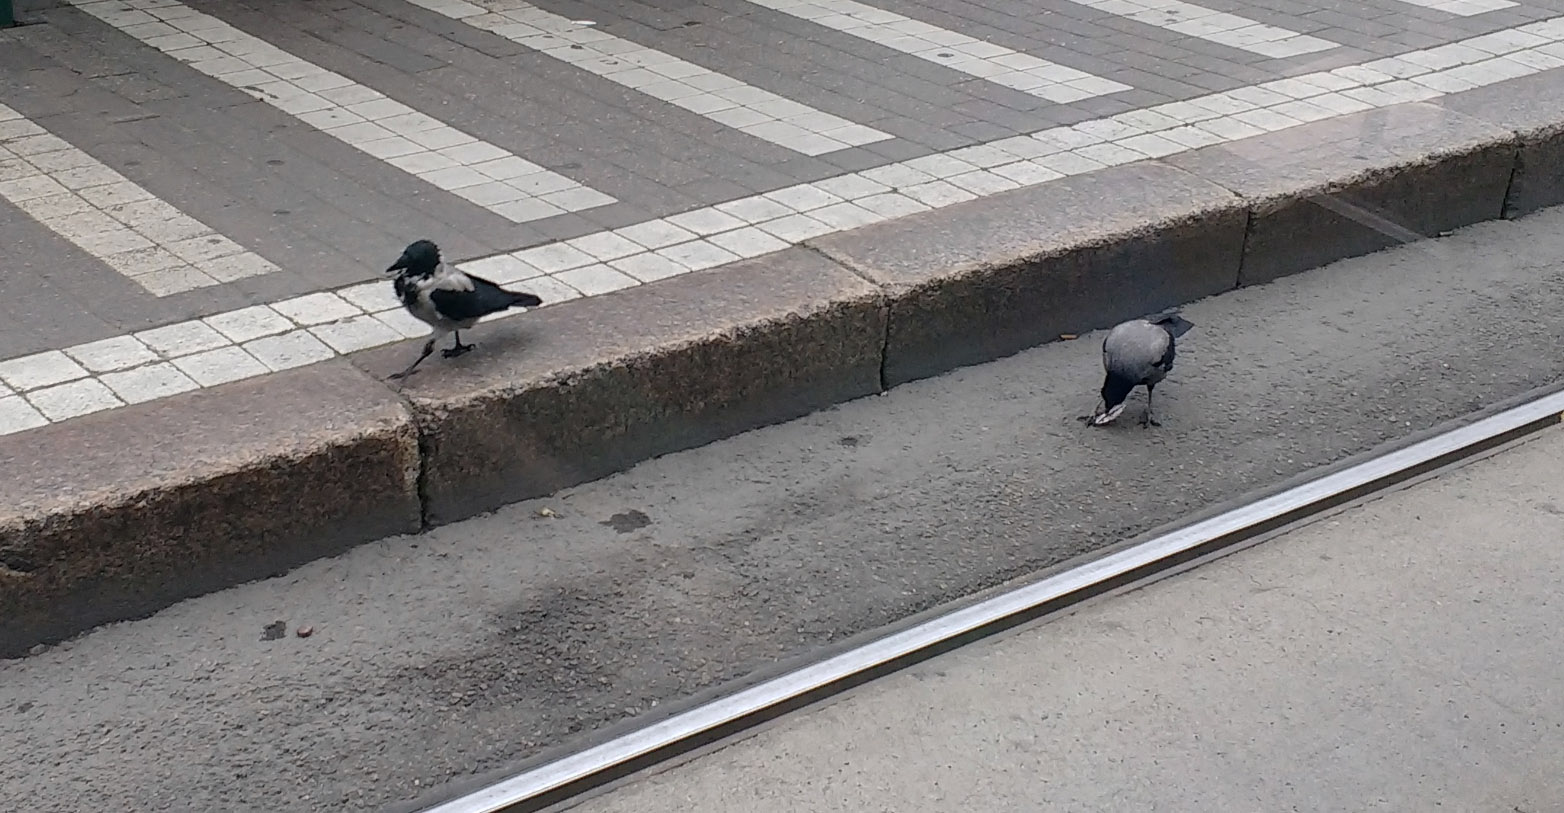 tramcrows1